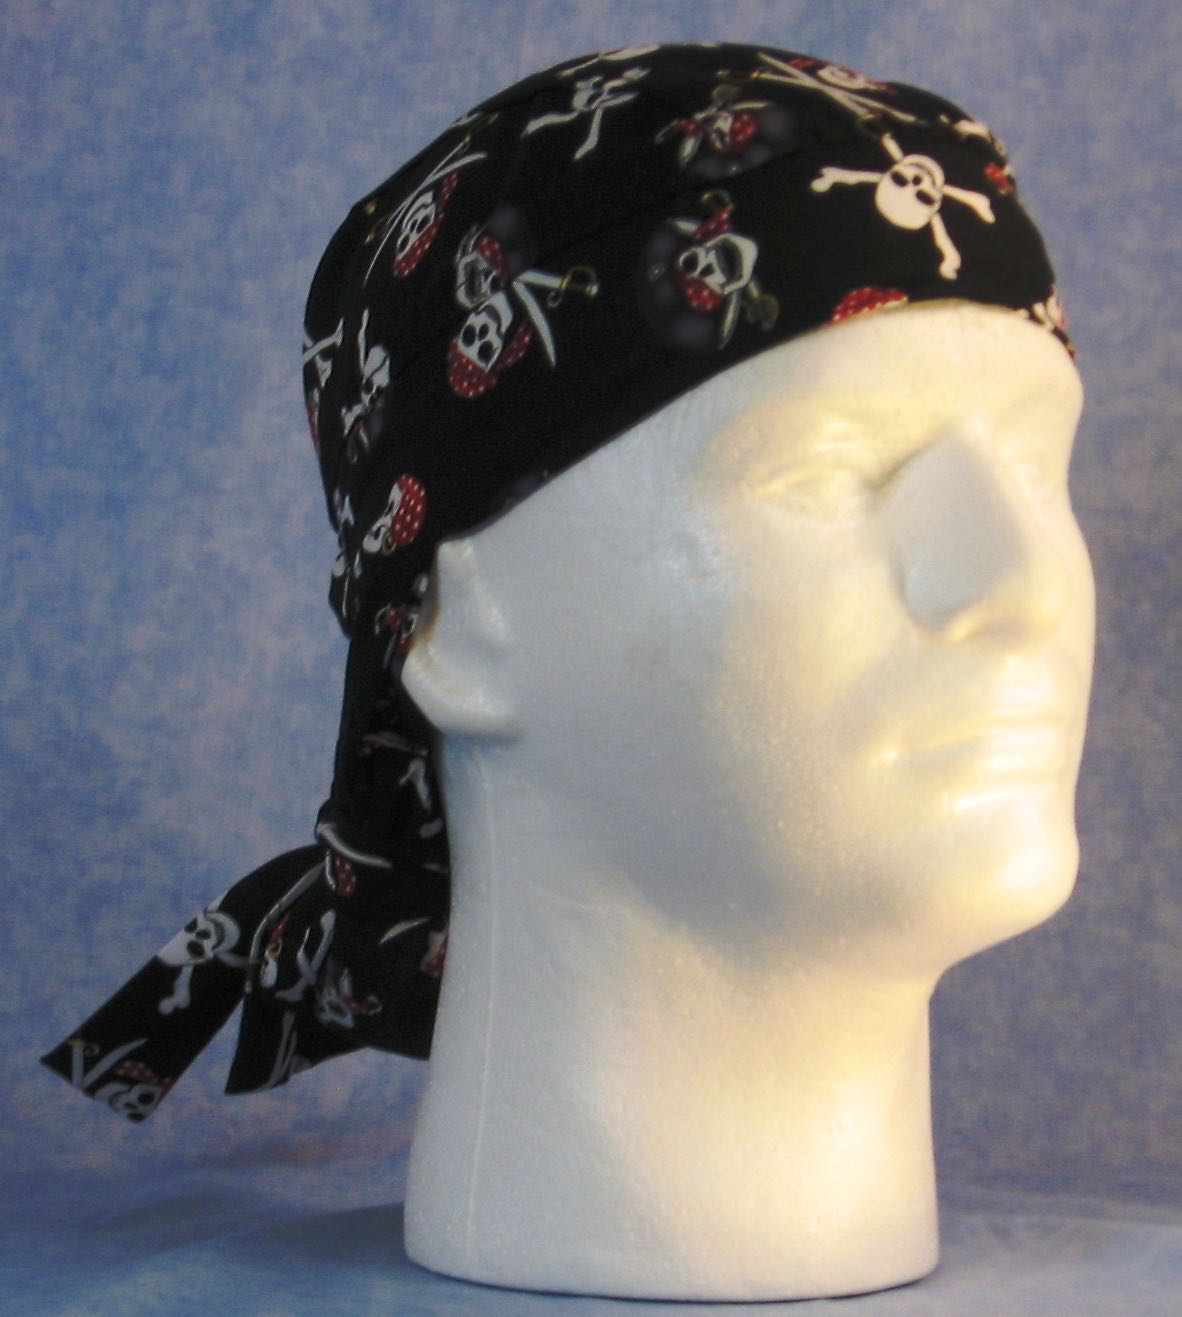 Hair Bag Do Rag in Black Pirate Skulls - Youth L-XL-Adult S